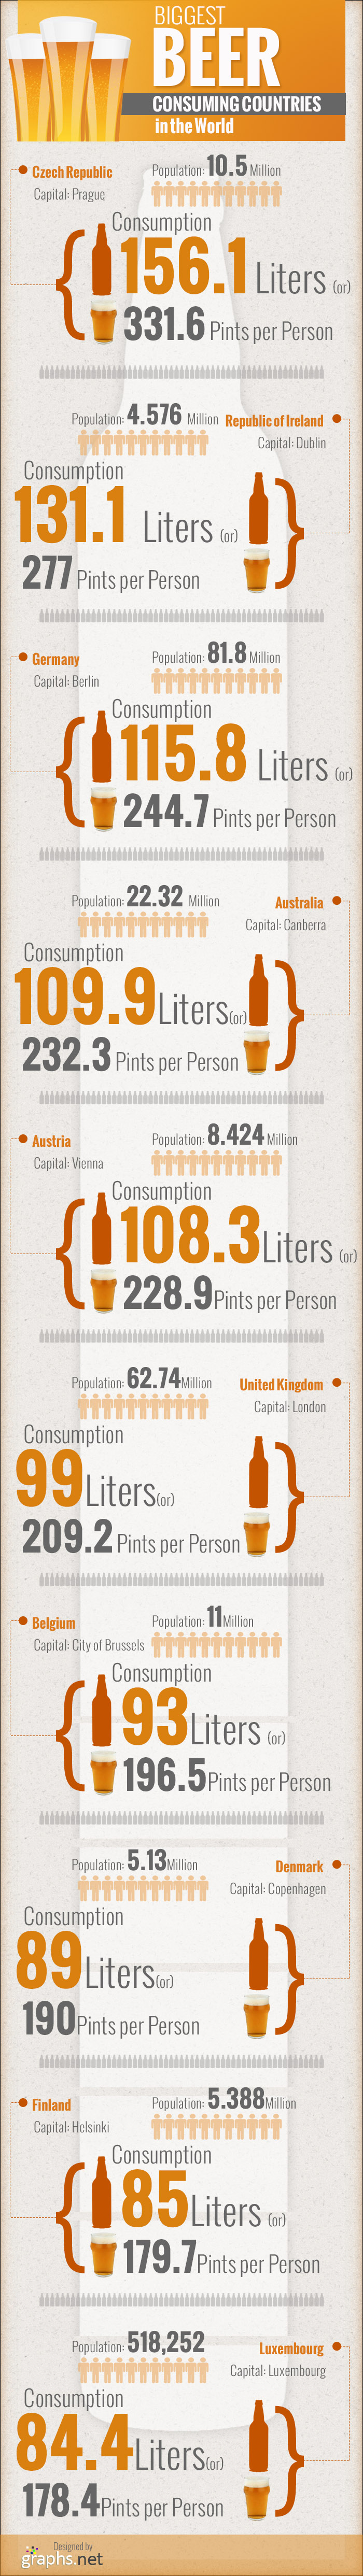 Biggest Beer Consuming Countries in the World